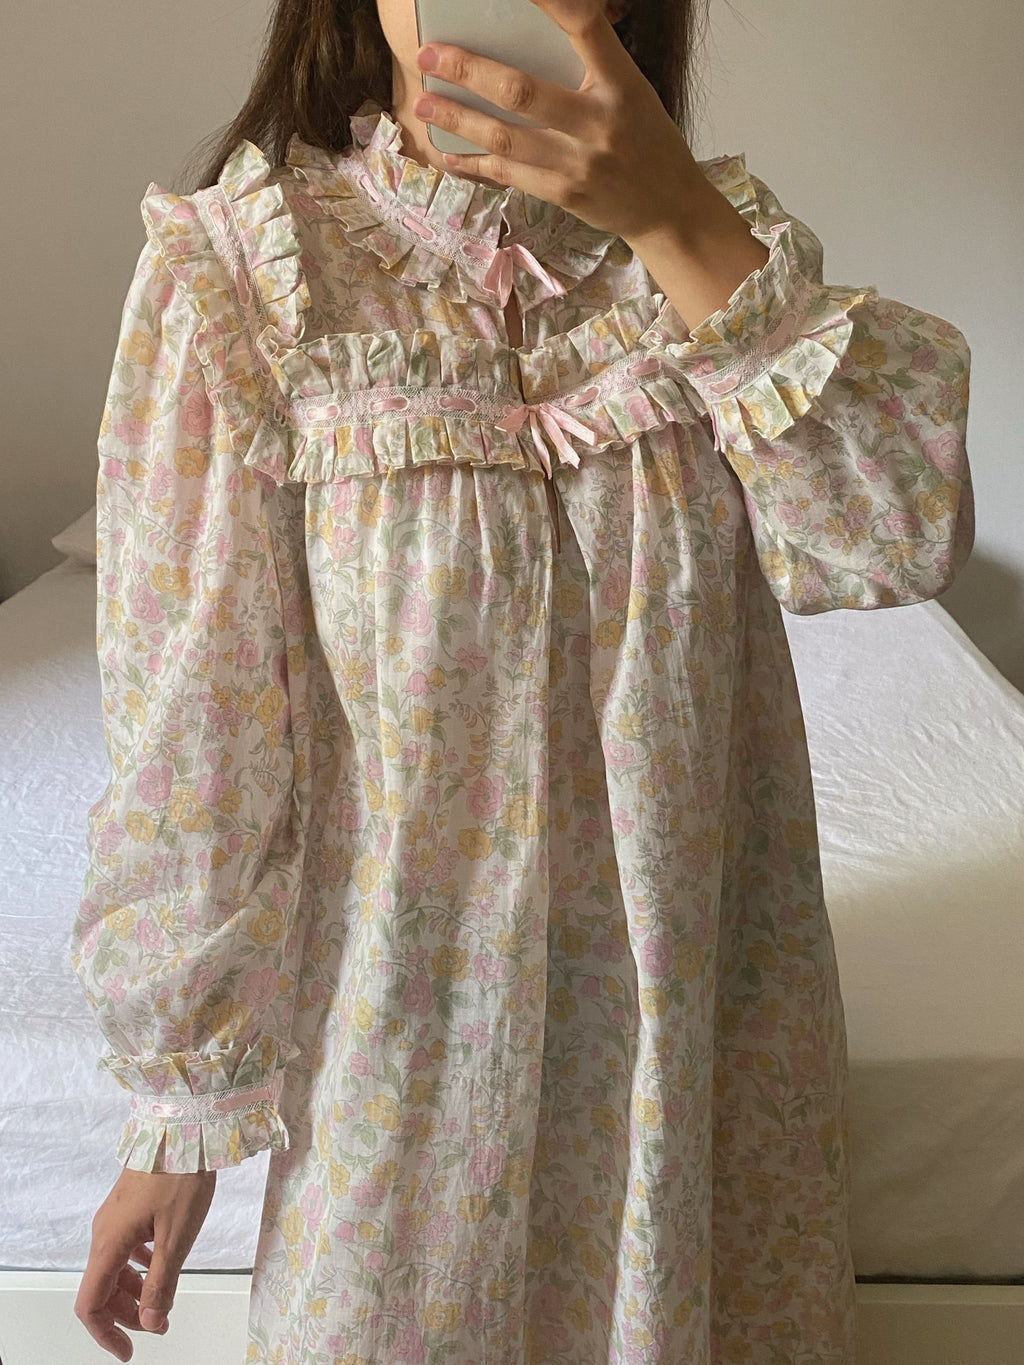 Vintage pure cotton rouches details flower dress/nightgown